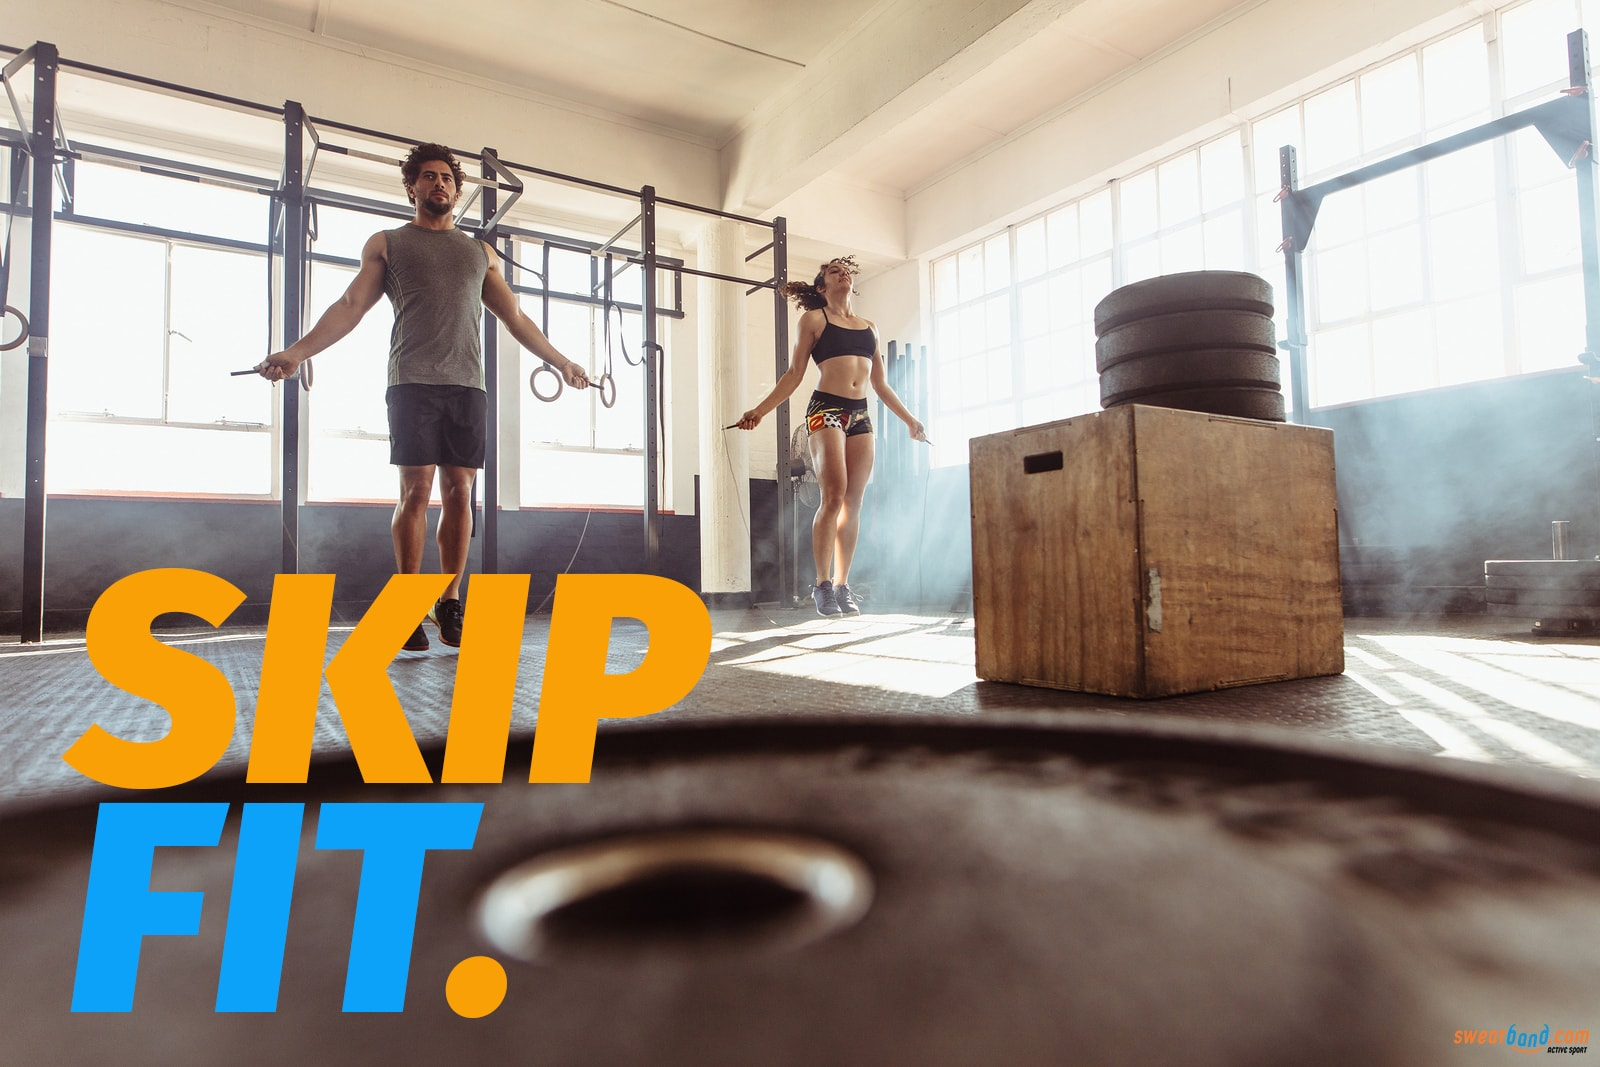 Skip like a boxer to get fitter